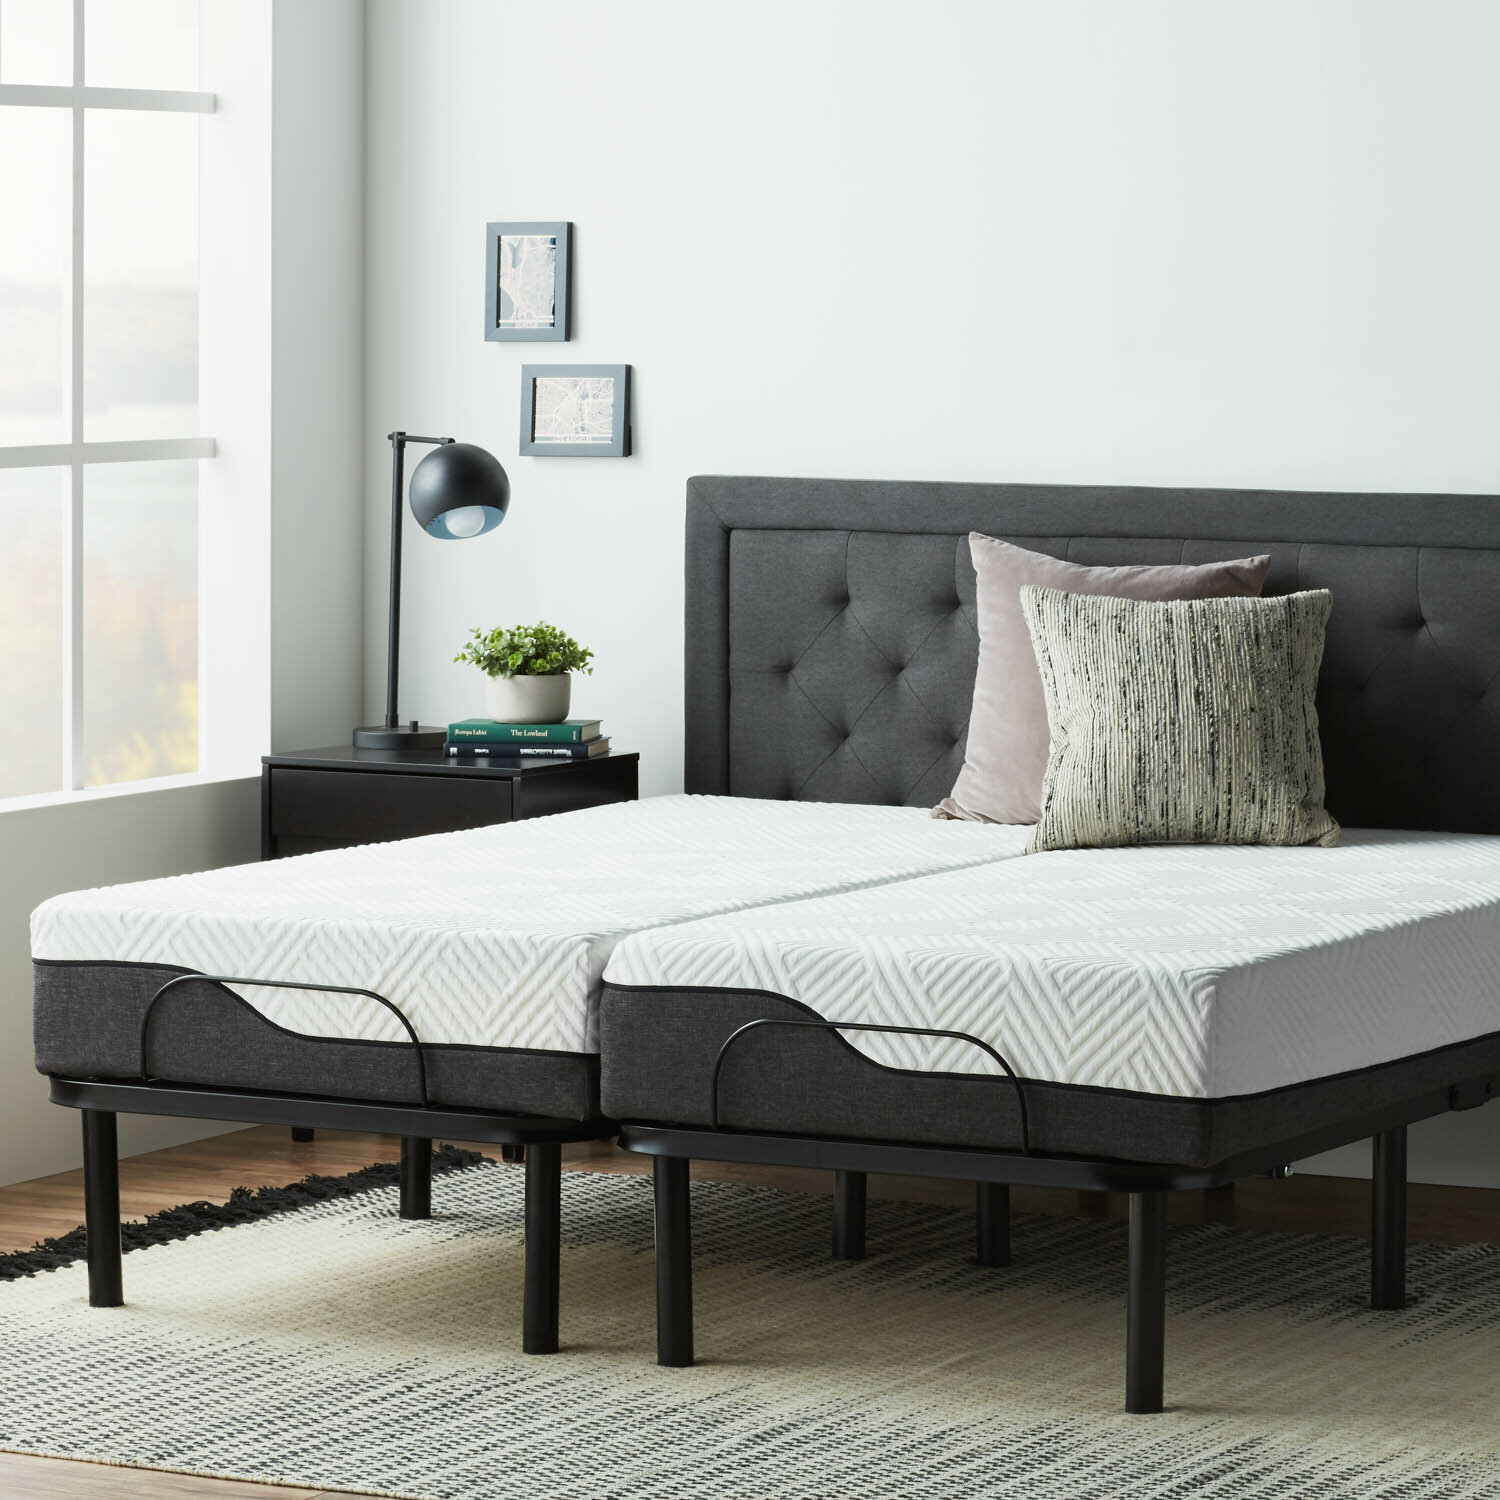 Ashley HomeStore 1608 Creswell Ln Ext, Opelousas, LA 70570 ...  Craftmatic Bed Store Locations